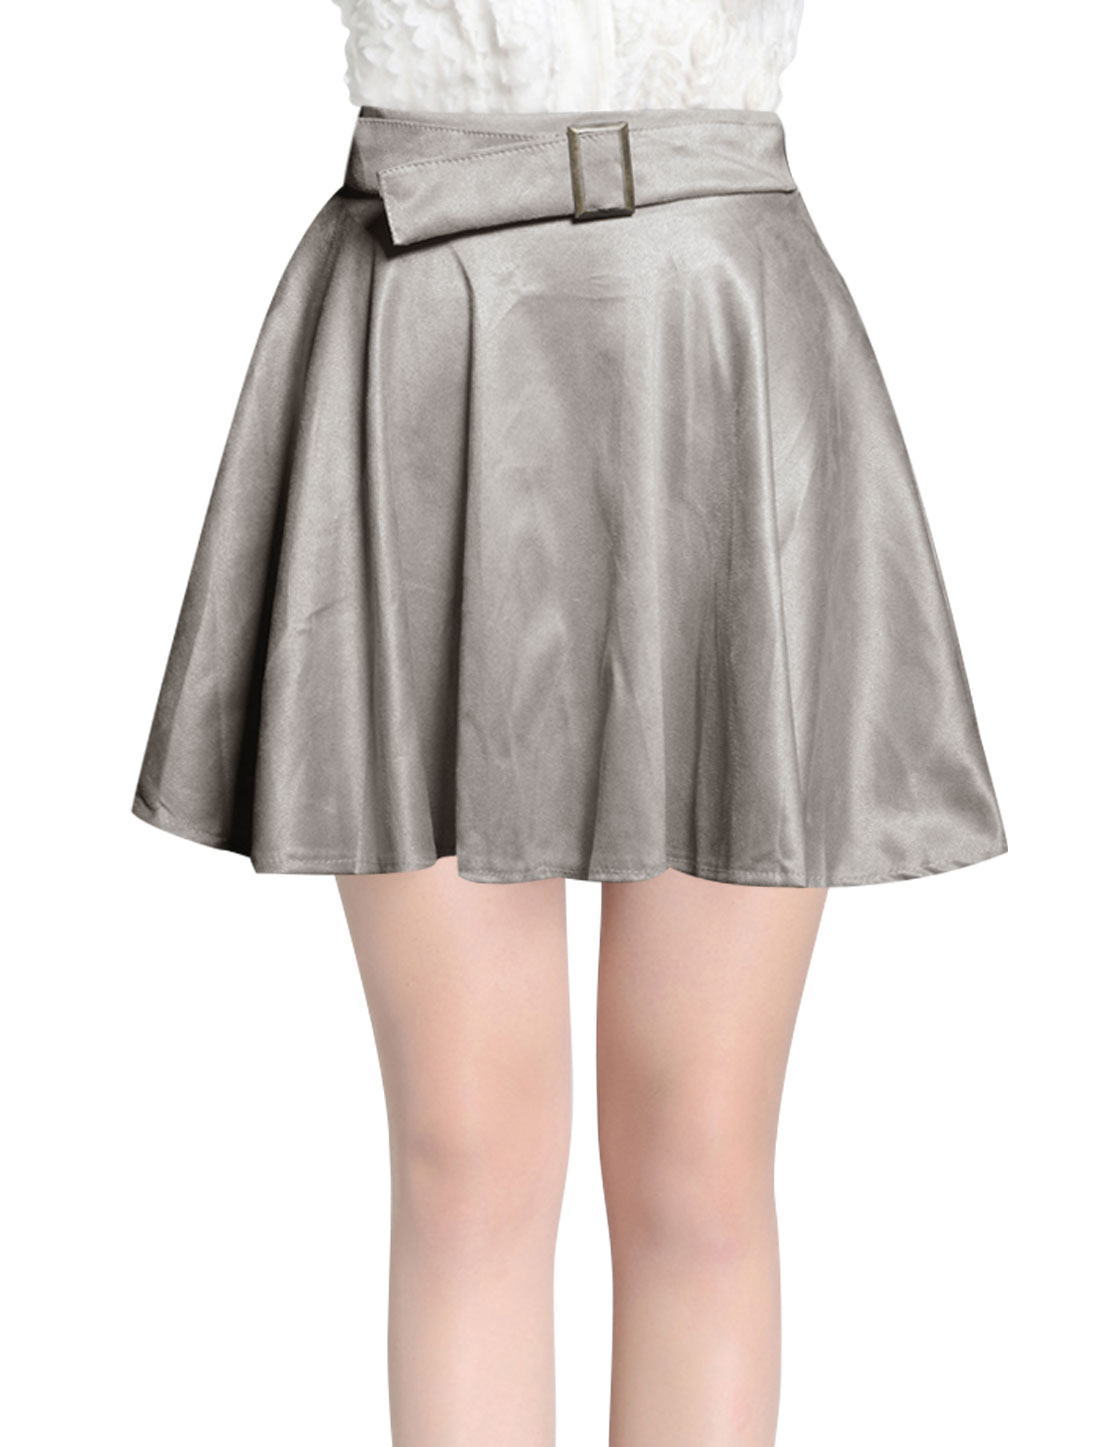 Women Ruffled Design Mini Leisure A-Line Skirt w Waist Belt Light Grey S